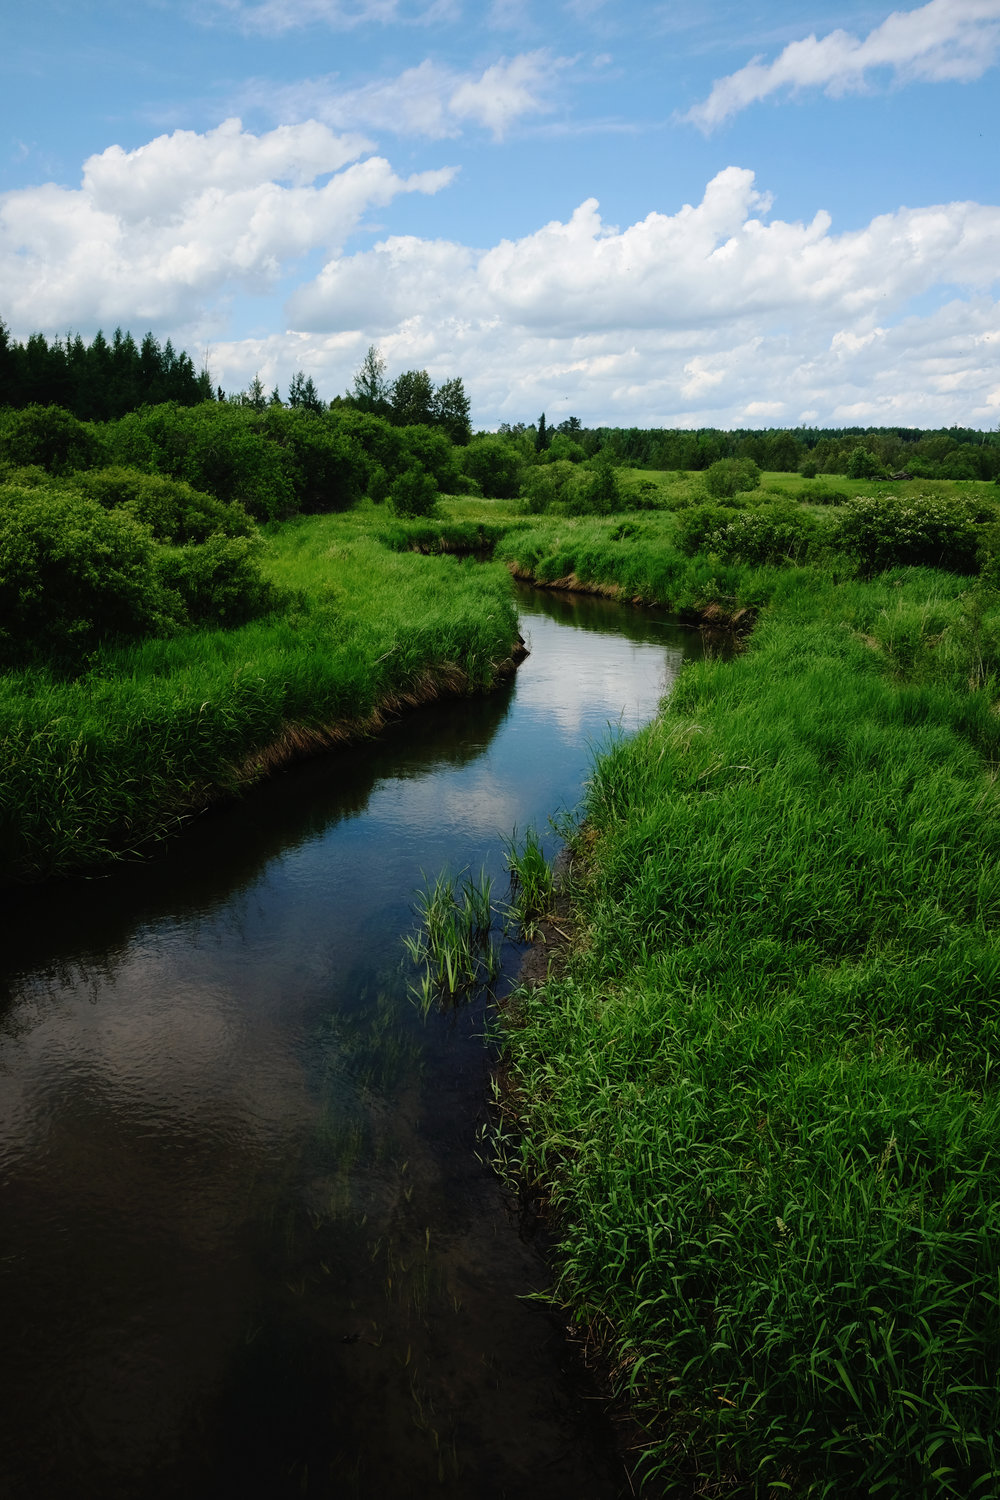 The Mississippi River near the Headwaters